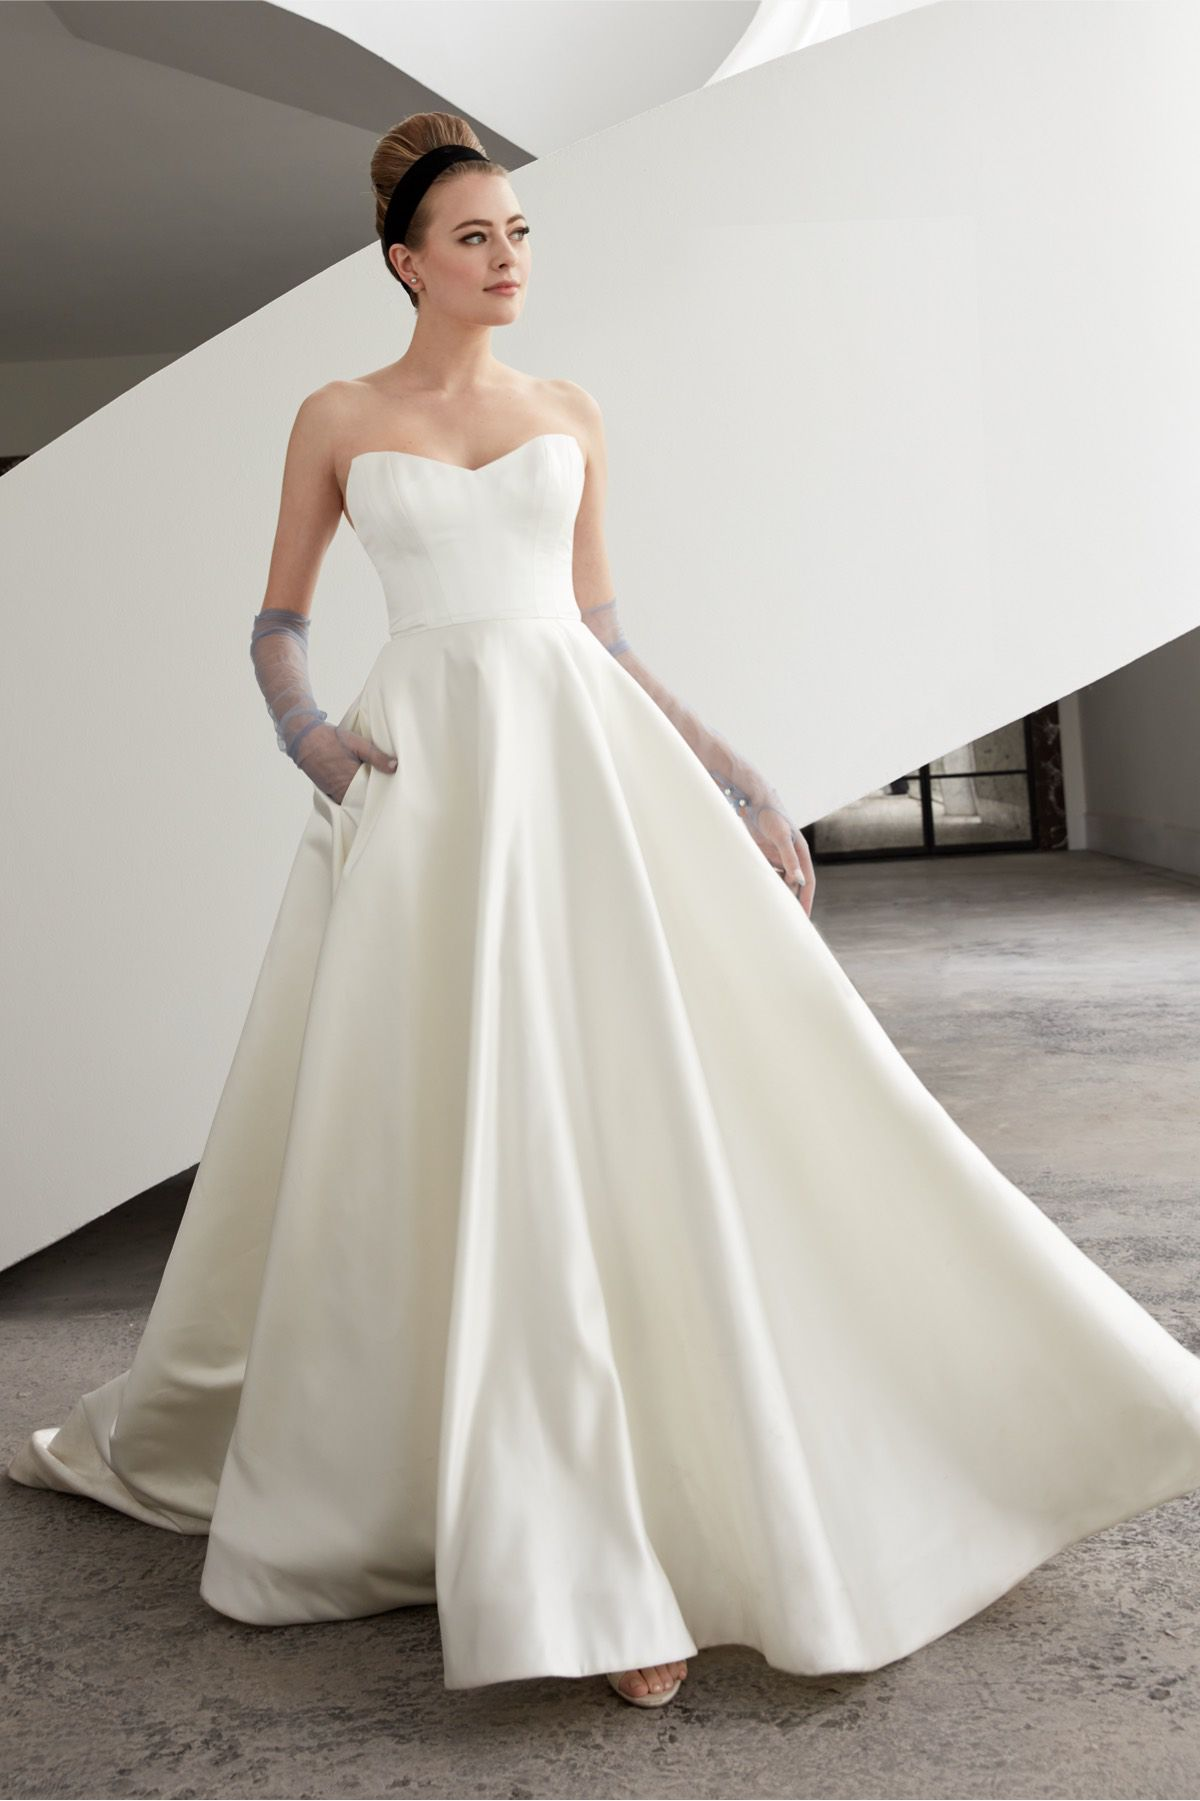 Model in strapless ball gown wedding dress with pockets